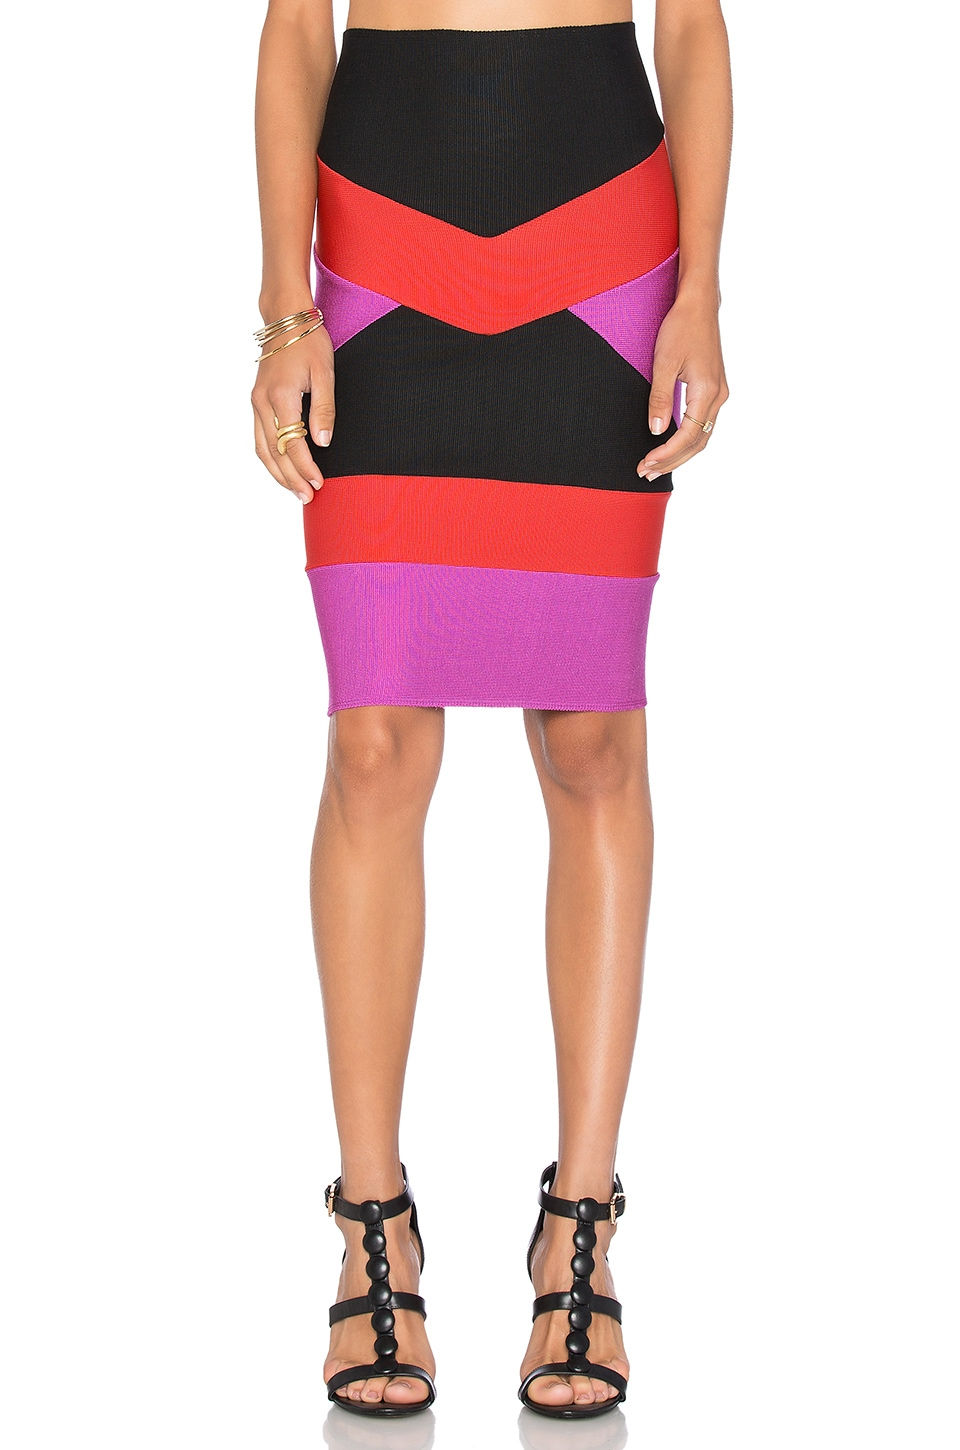 LOLITTA Bandage Tri Color Mini Skirt in Violet & Black & Red